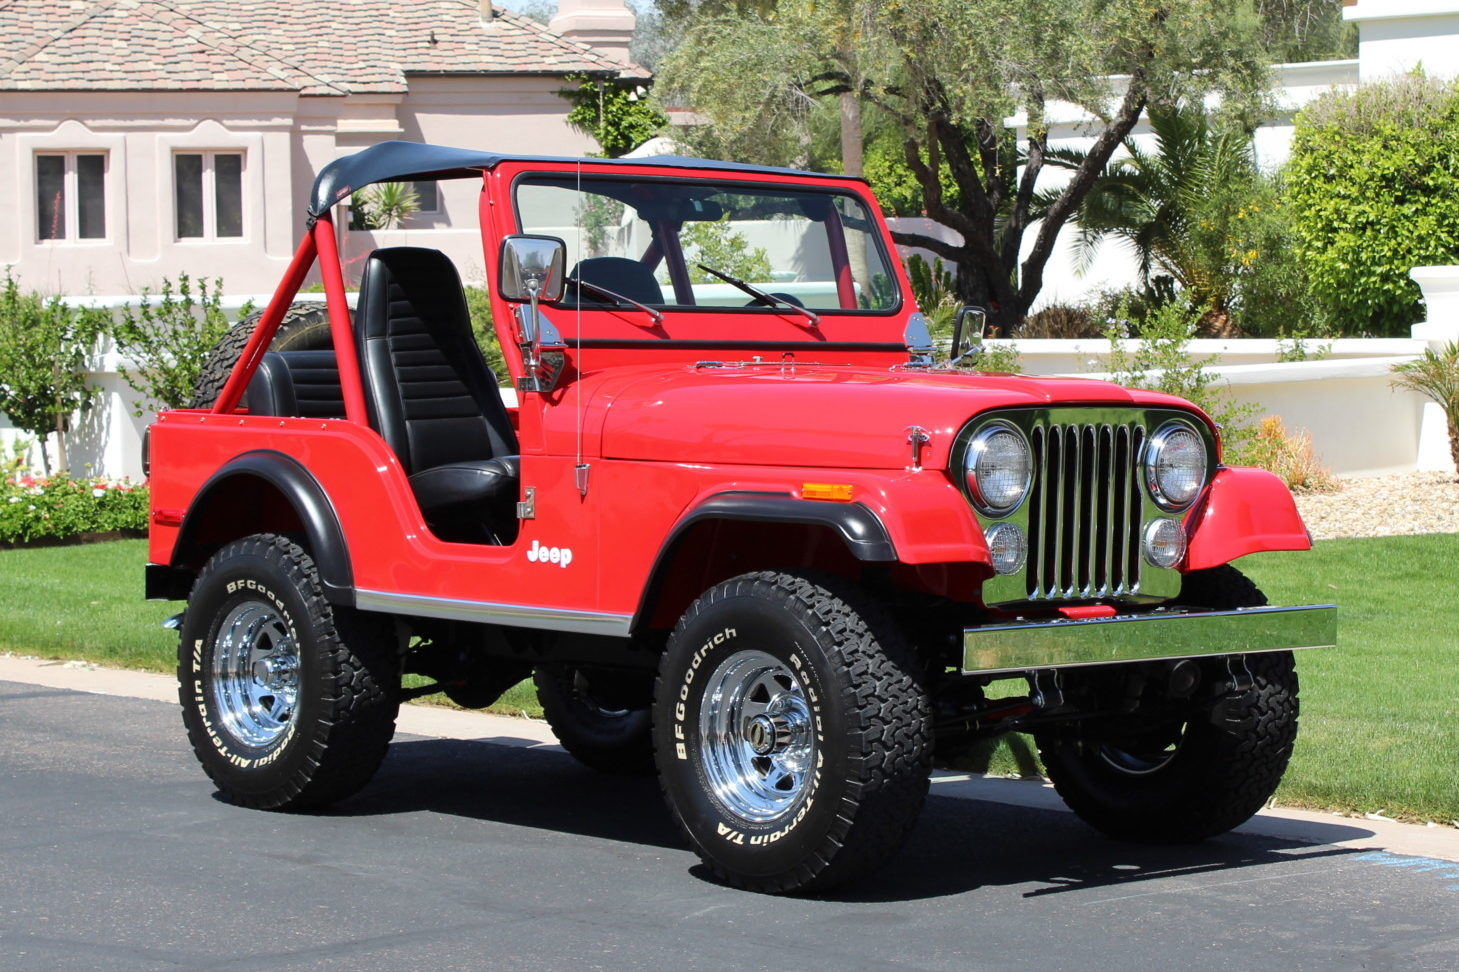 hight resolution of restored 1980 jeep cj 5 for sale on bat auctions sold for 26 500 on may 7 2019 lot 18 572 bring a trailer